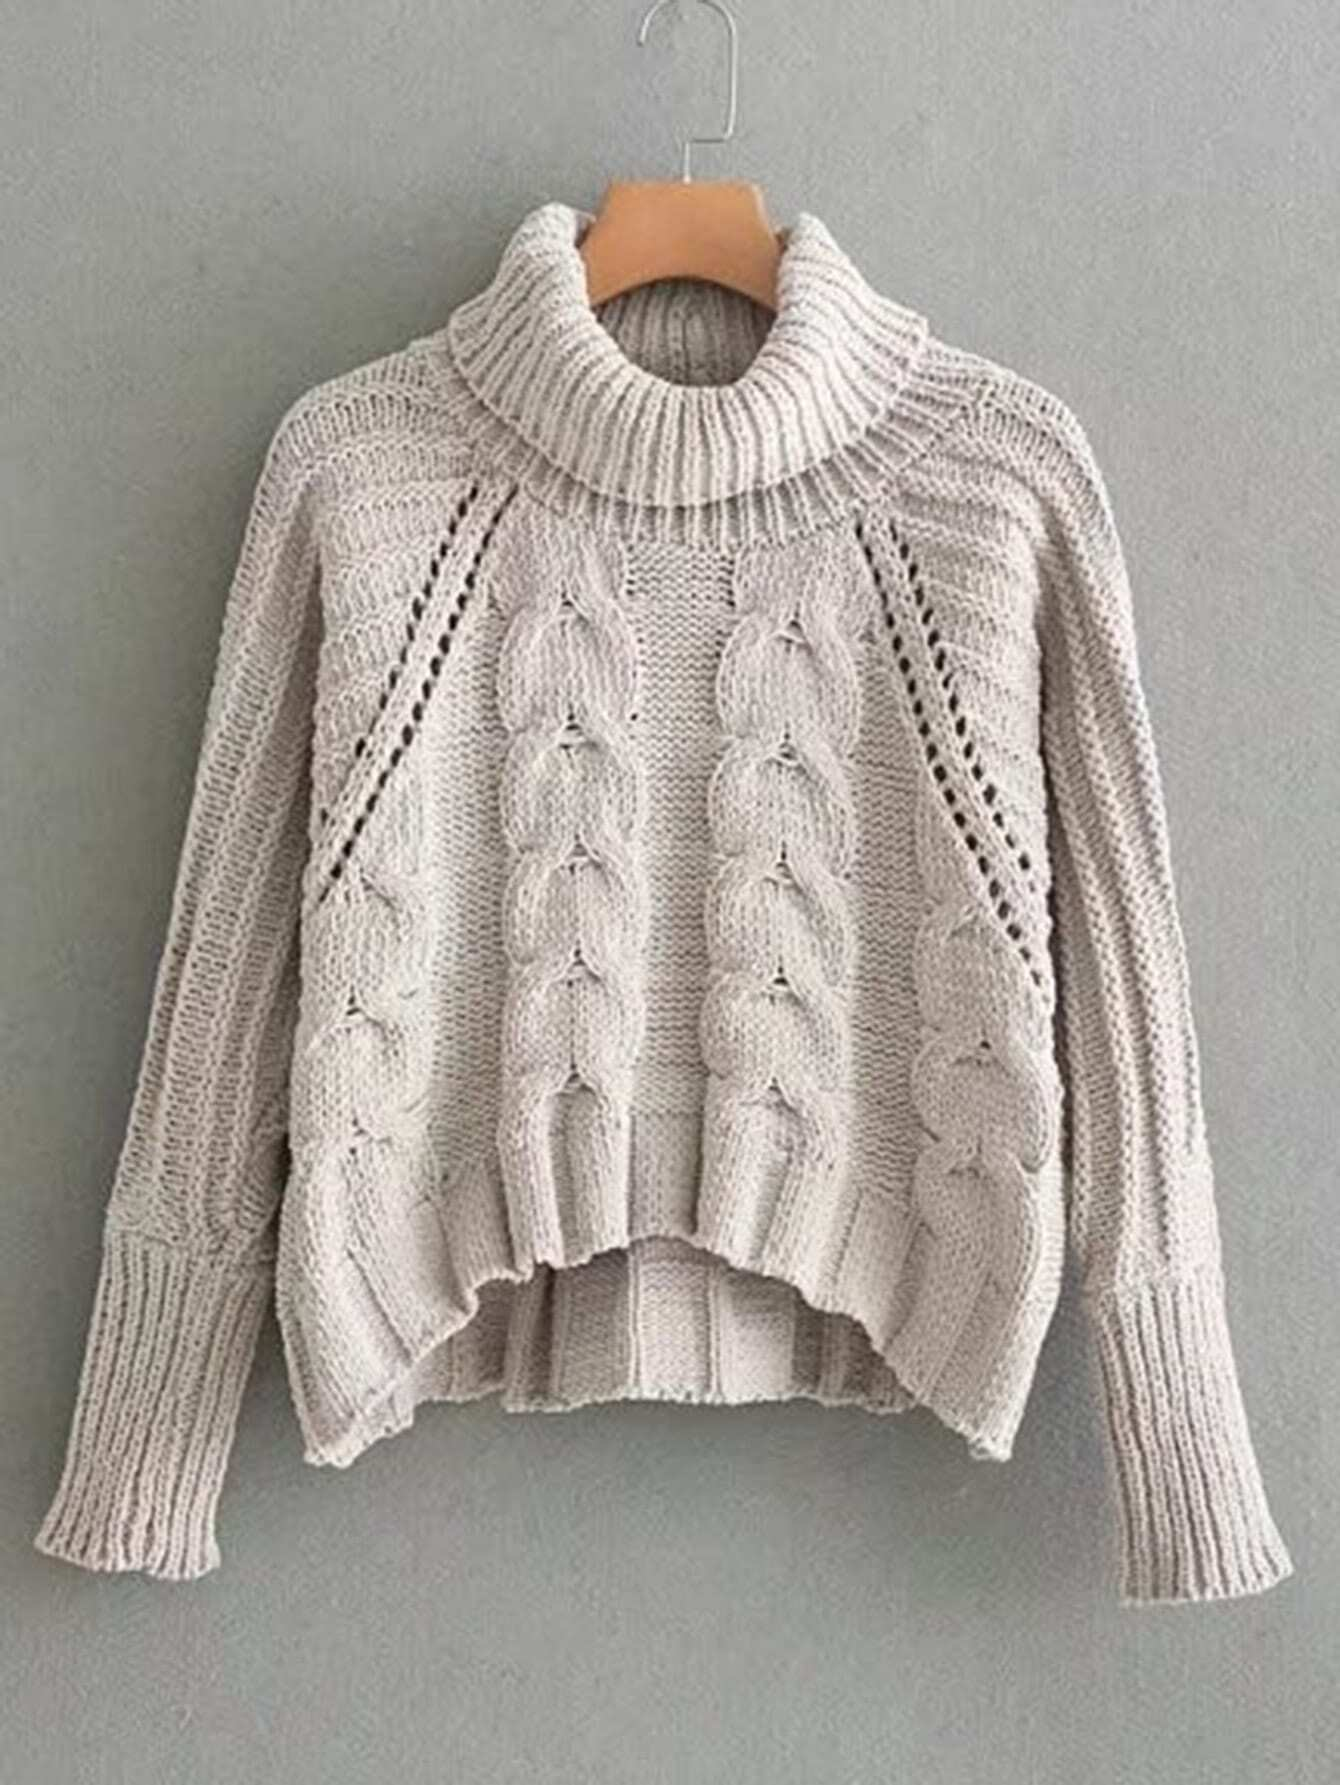 Pointelle Detail Turtleneck Cable Knit Sweater colorblock cable knit sweater